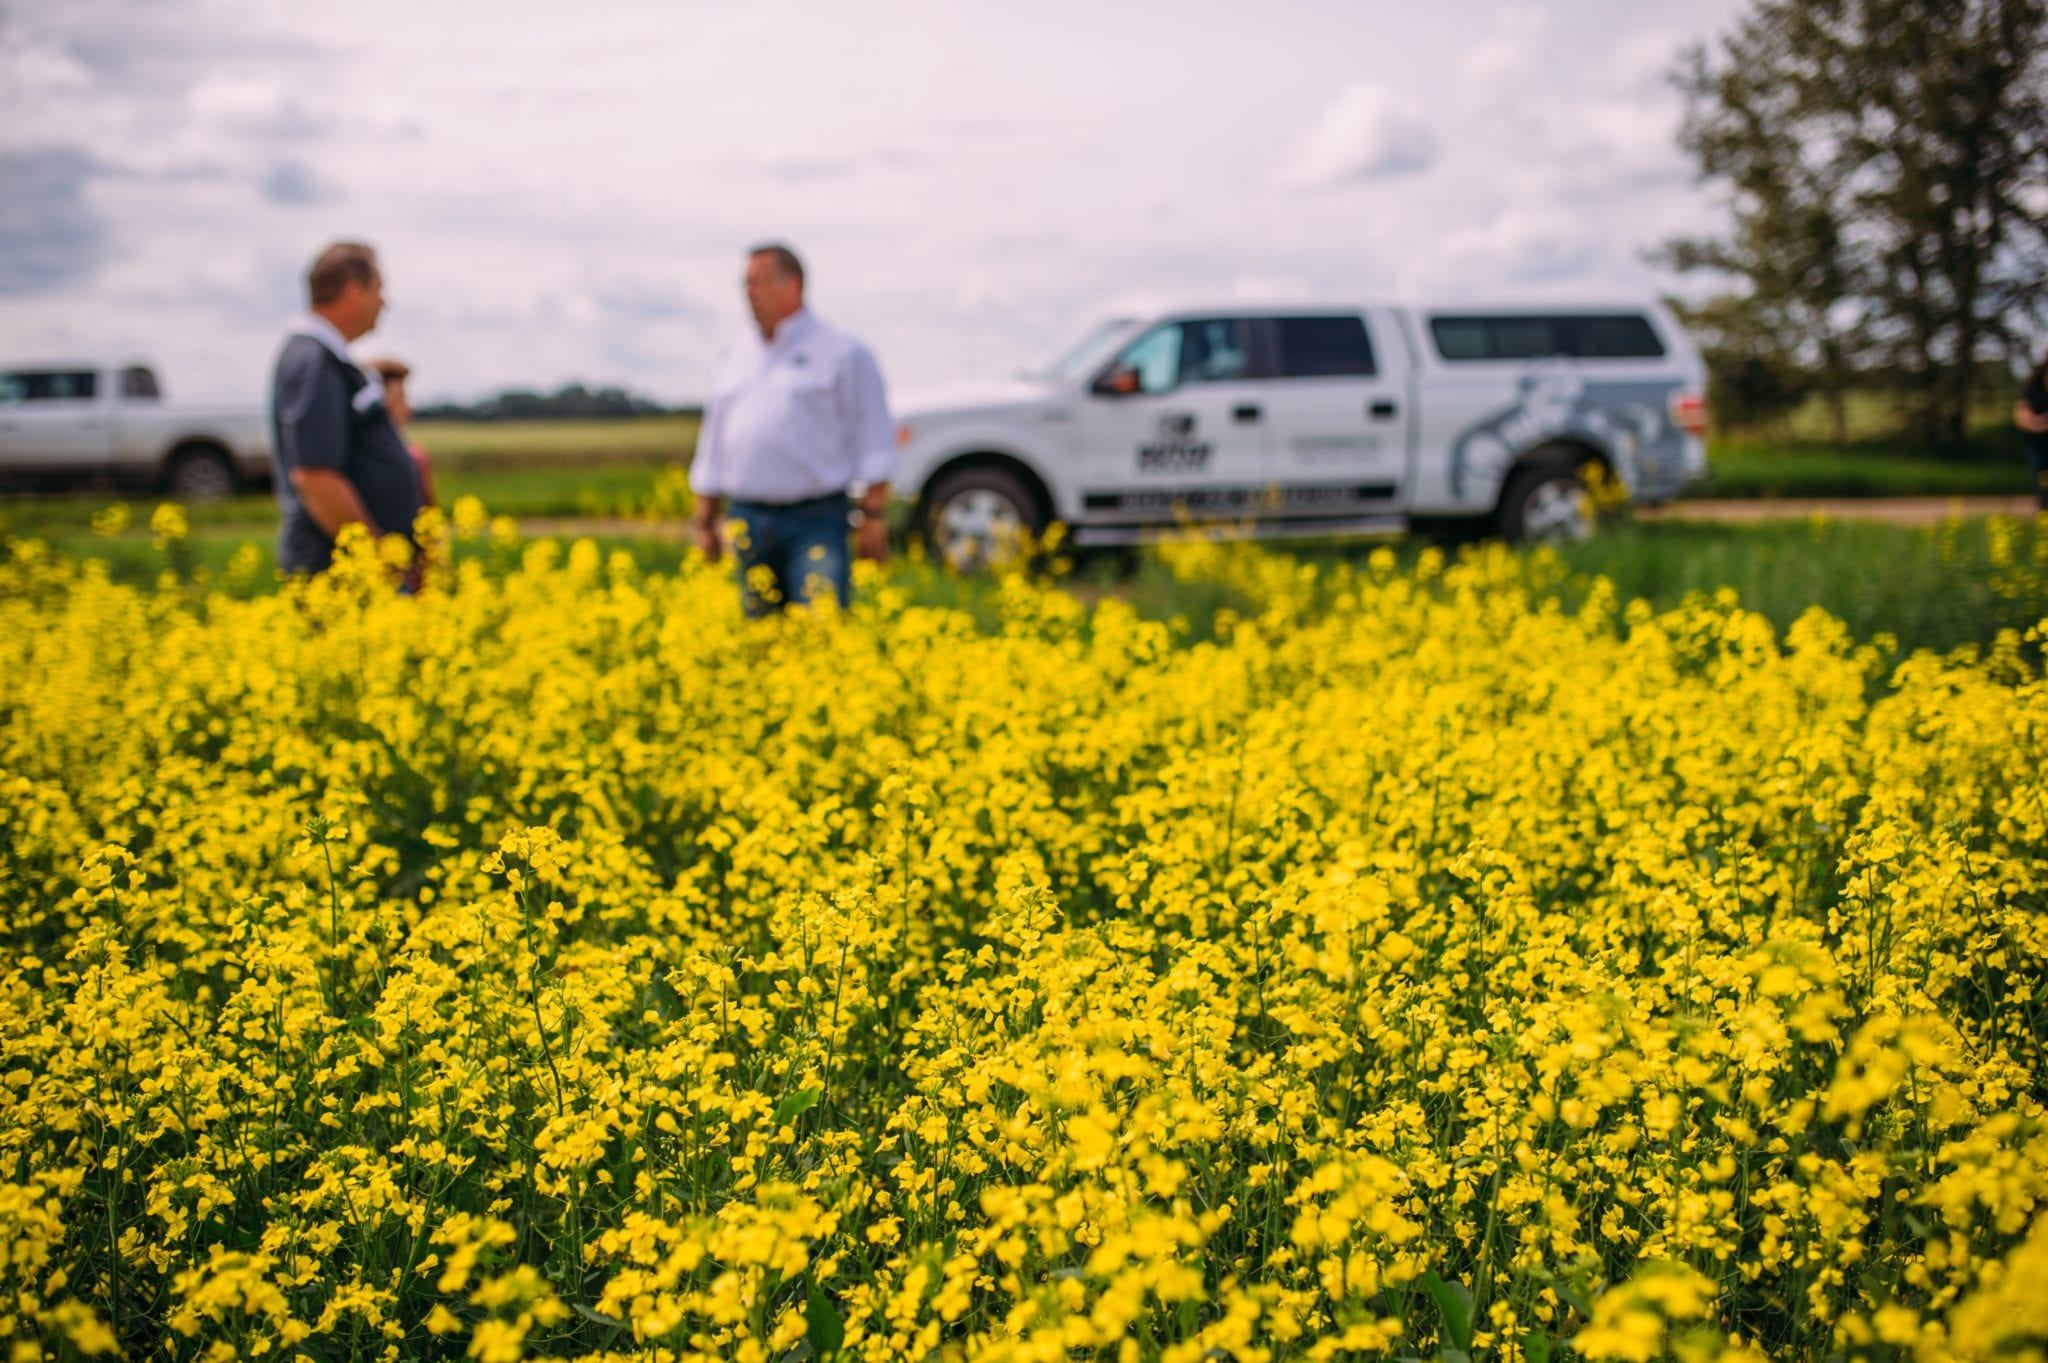 Two farmers standing outside in a canola field with two white pickup trucks in the background